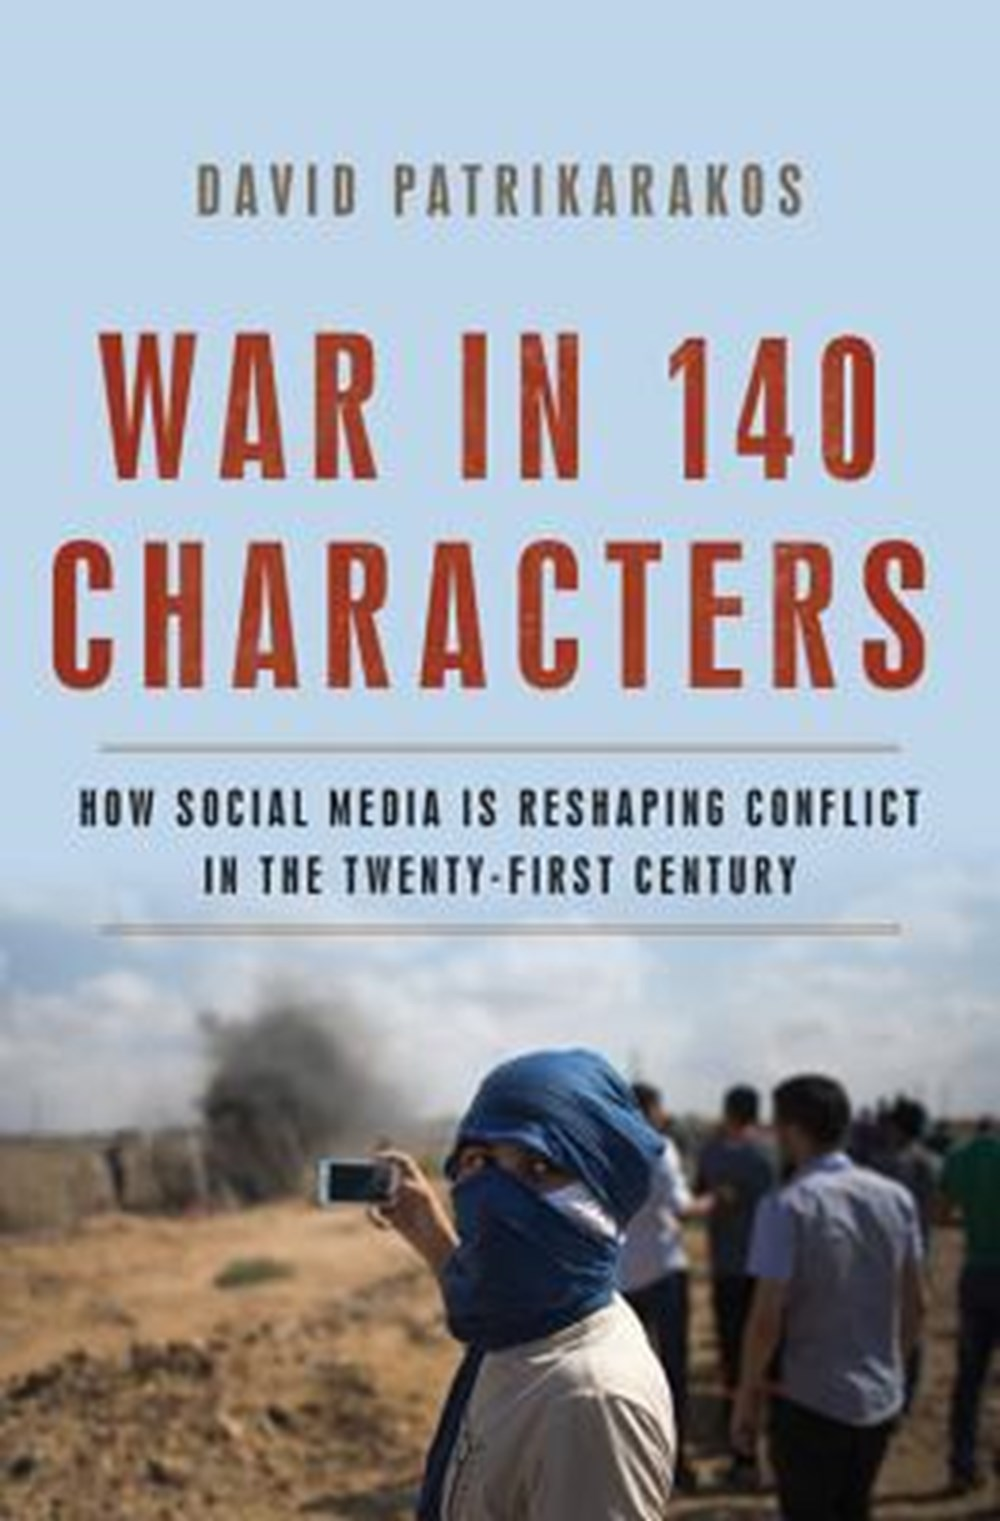 War in 140 Characters How Social Media Is Reshaping Conflict in the Twenty-First Century